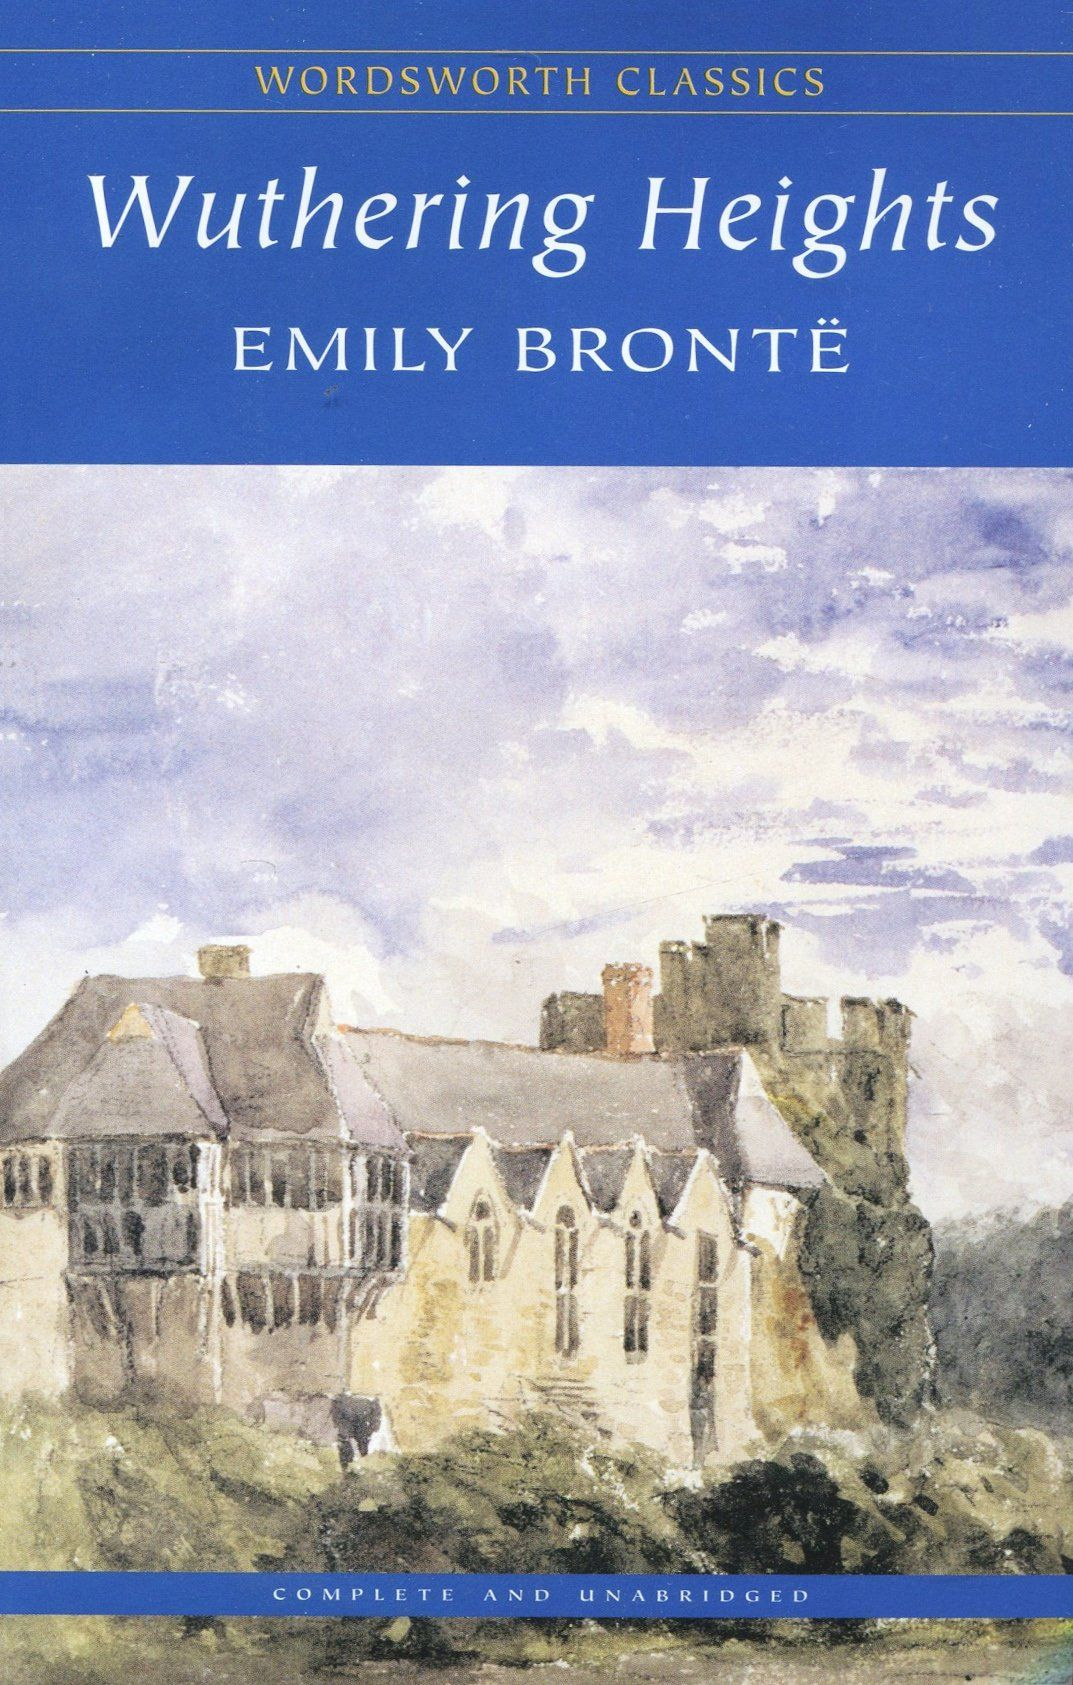 Wuthering Heights (Wordsworth Classics): Amazon.co.uk: Emily Brontë, John  S. Whitley, Dr Keith Carabine: 9781853260018: Books